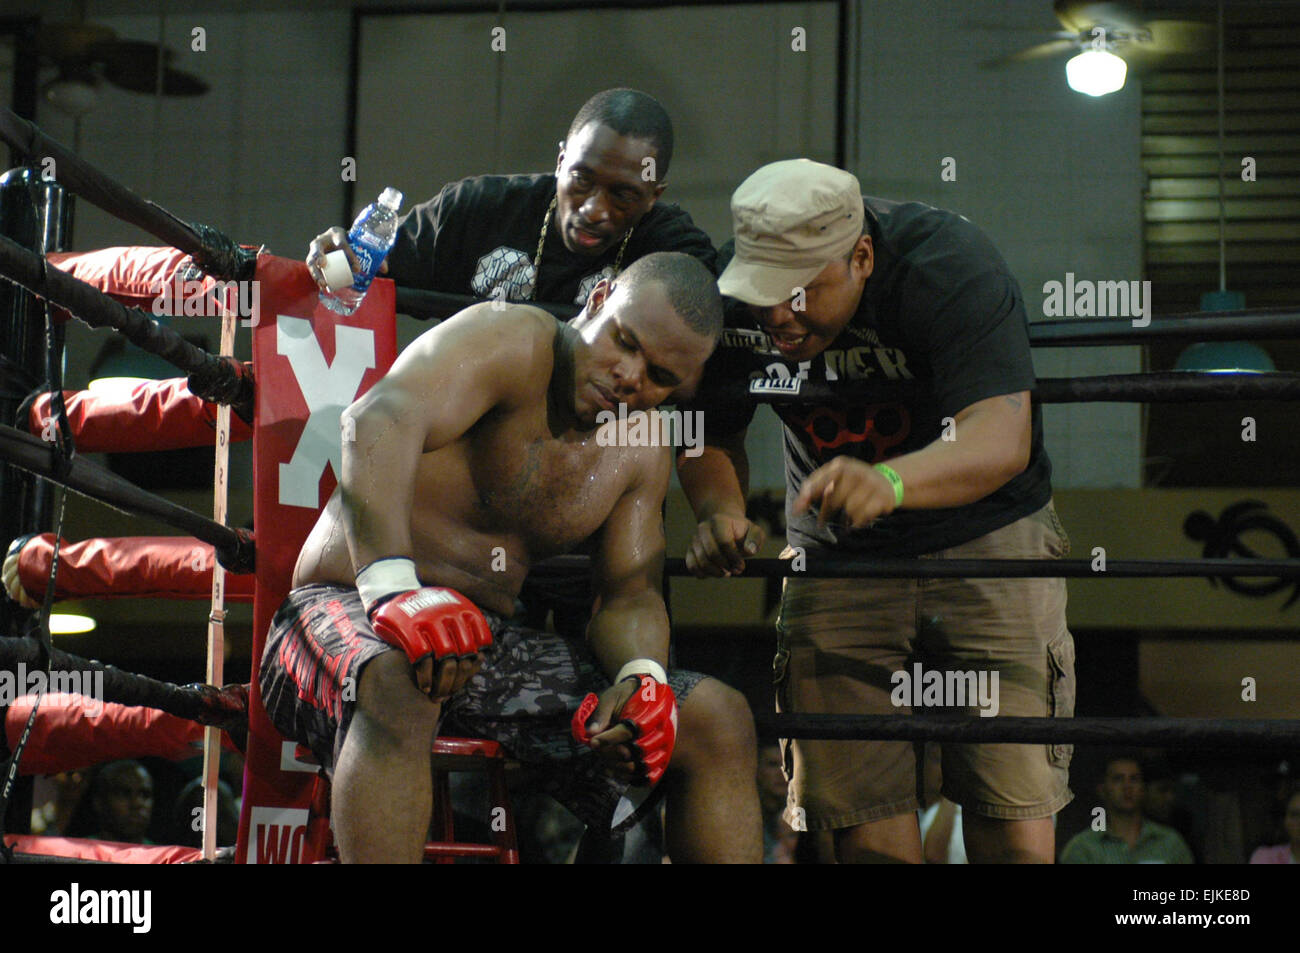 Sgt. 1st Class Anthony Chenault, 185-pound competitor, listens to guidance from his coaches during the main event - Stock Image